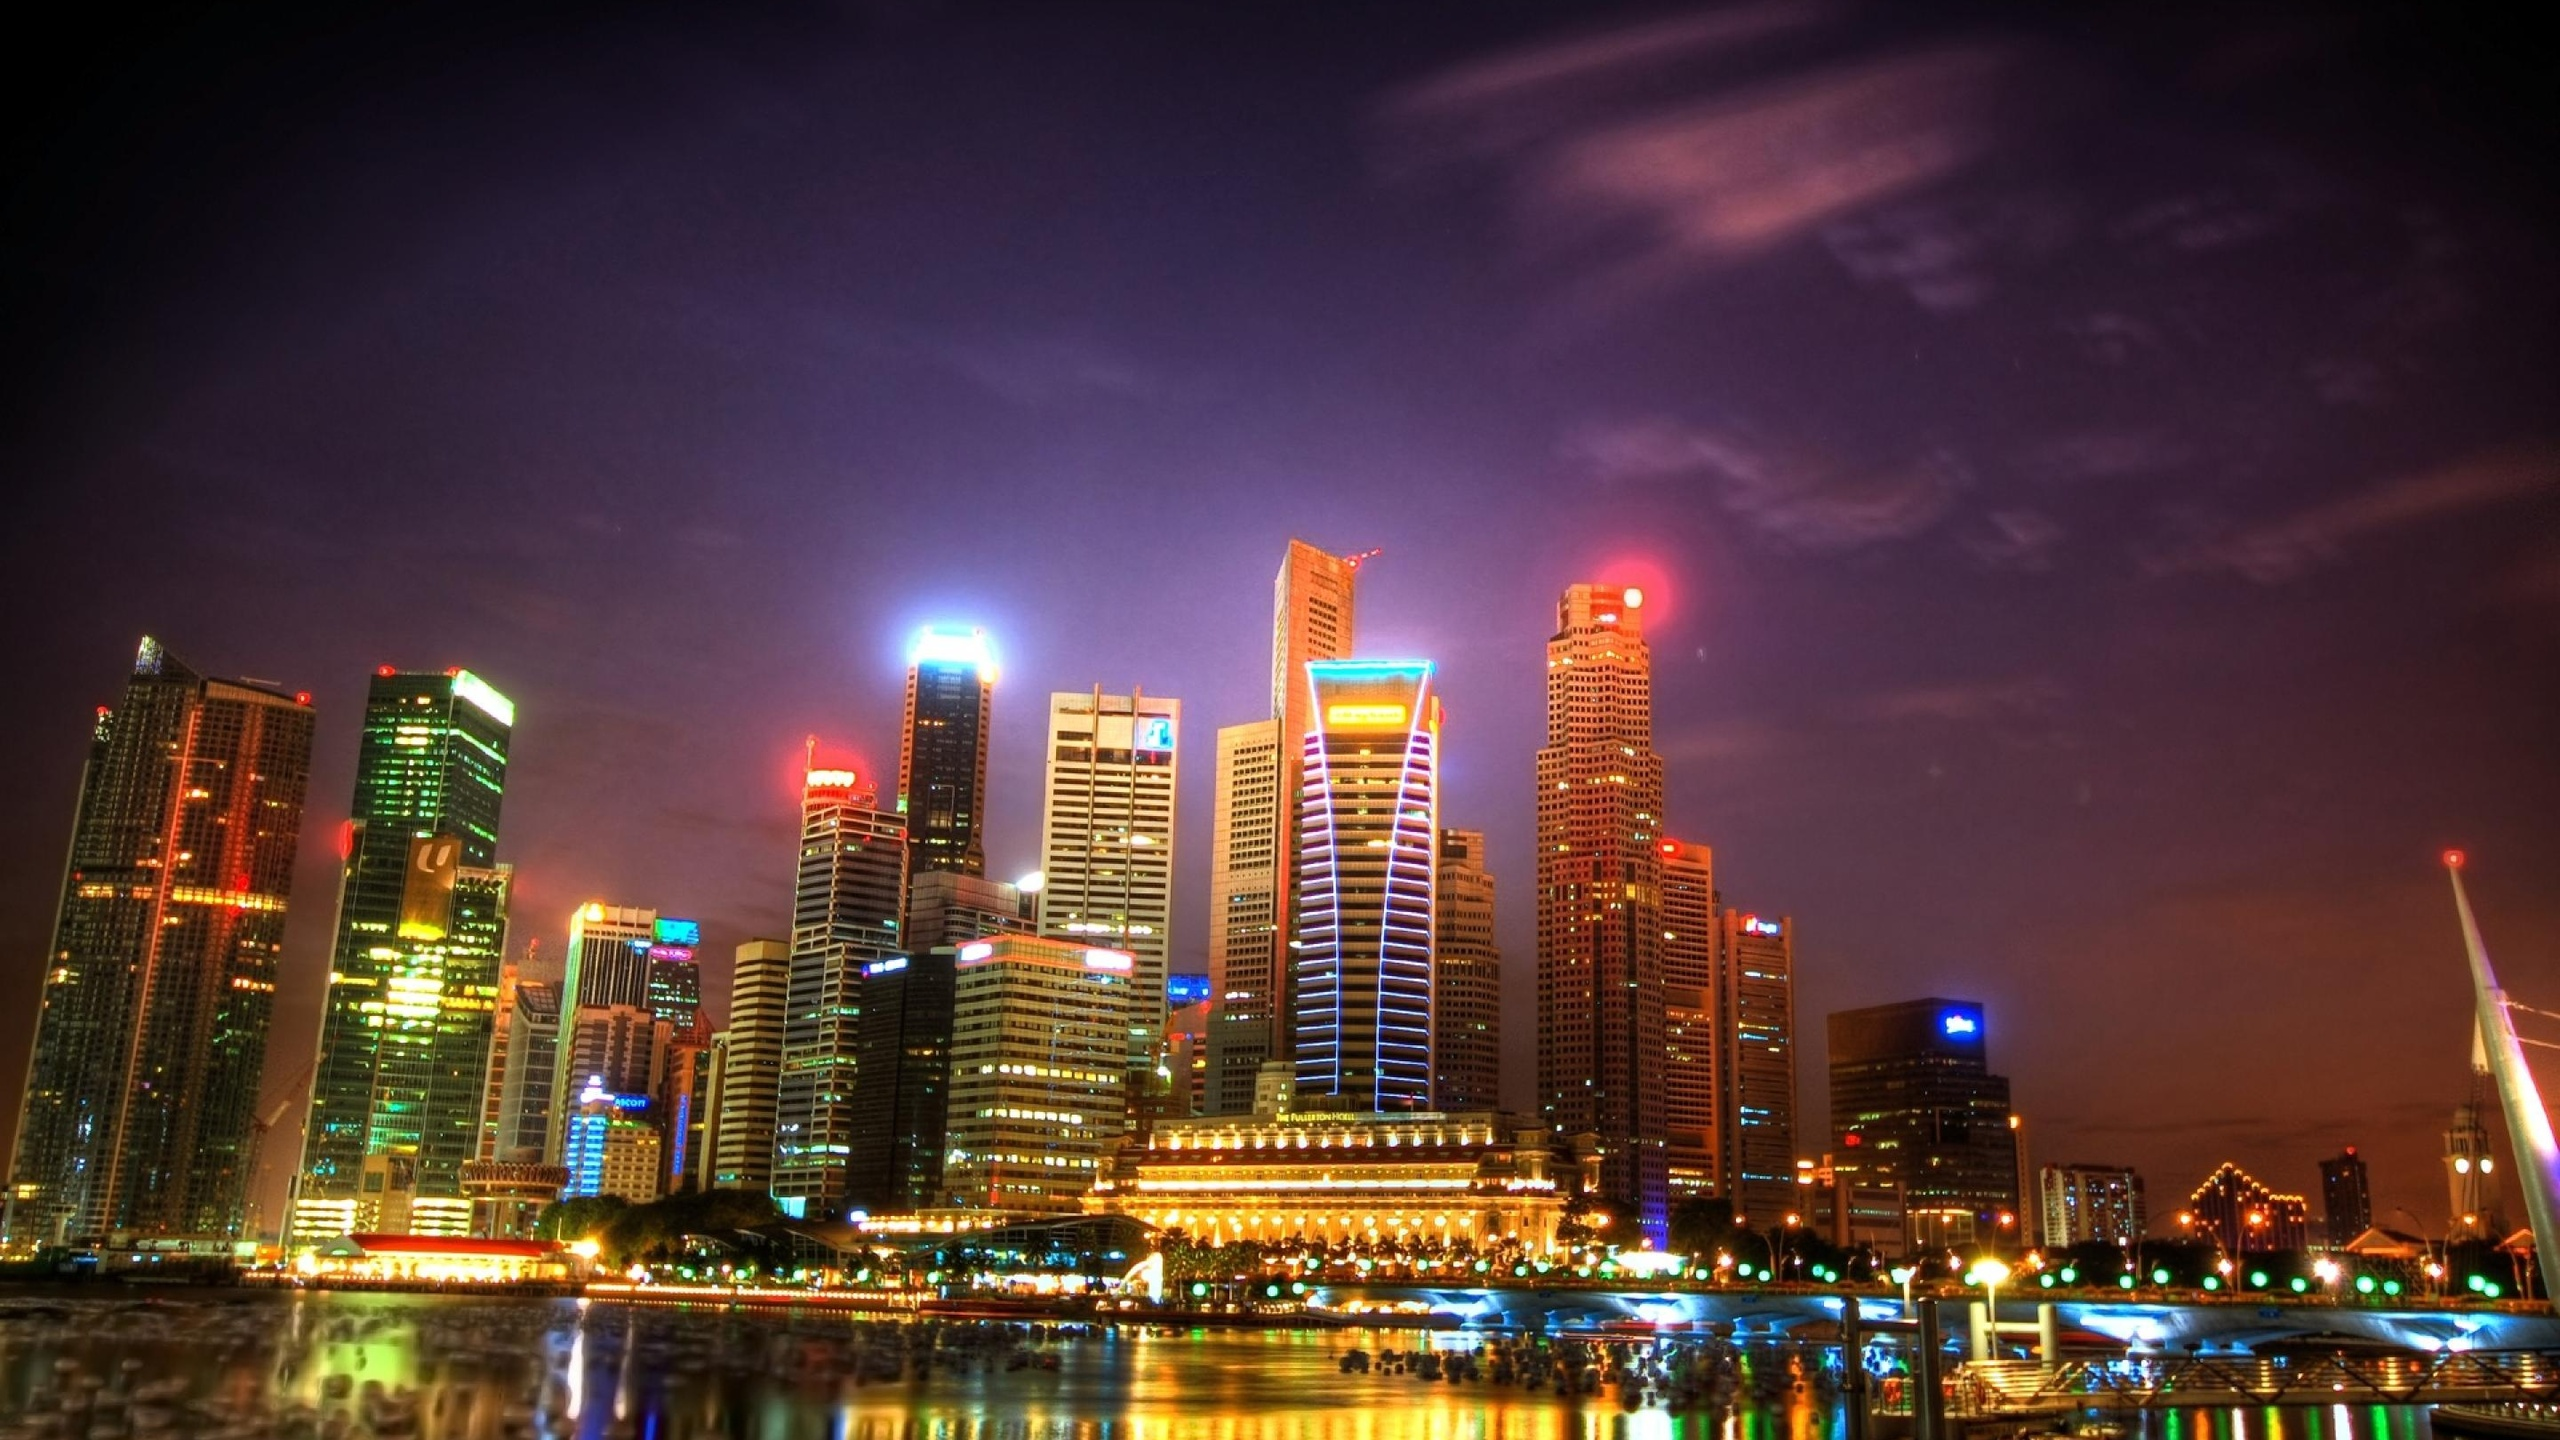 City Skyline Wallpaper Iphone Singapore Wallpapers Pictures Images